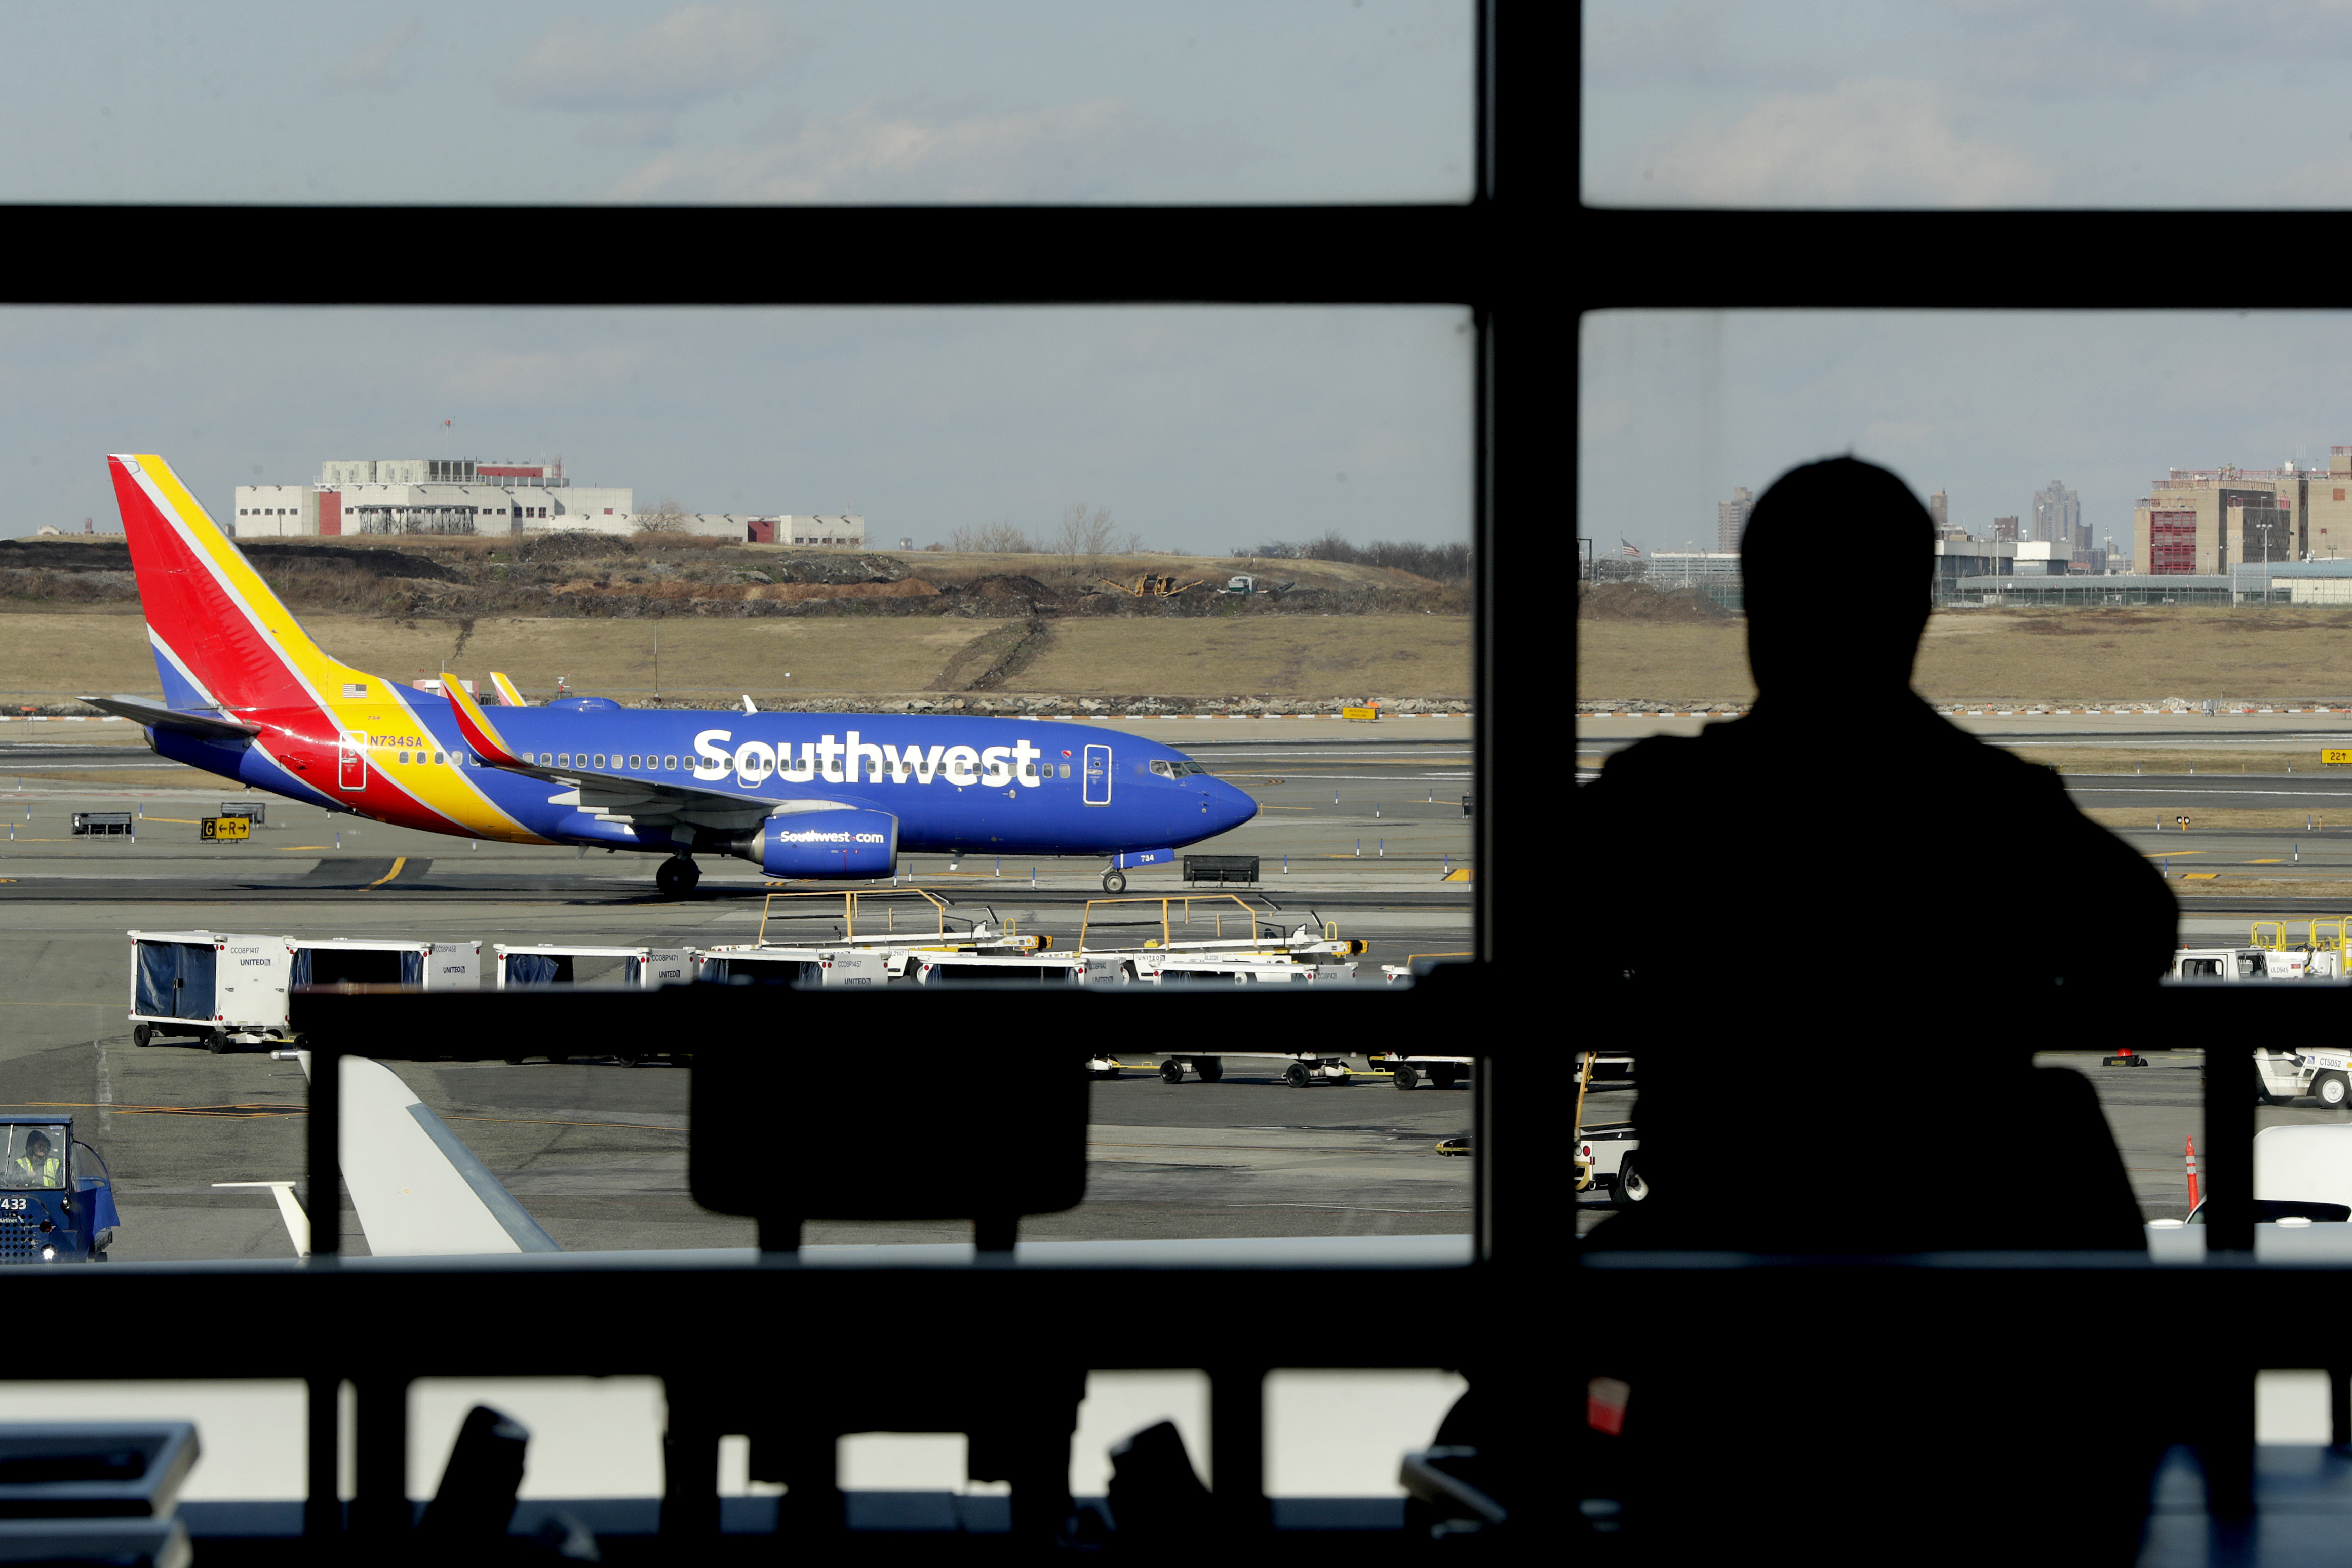 A Southwest Airlines jet moves on the runway as a person eats at a terminal restaurant at LaGuardia Airport in New York, on Jan 25, 2019.